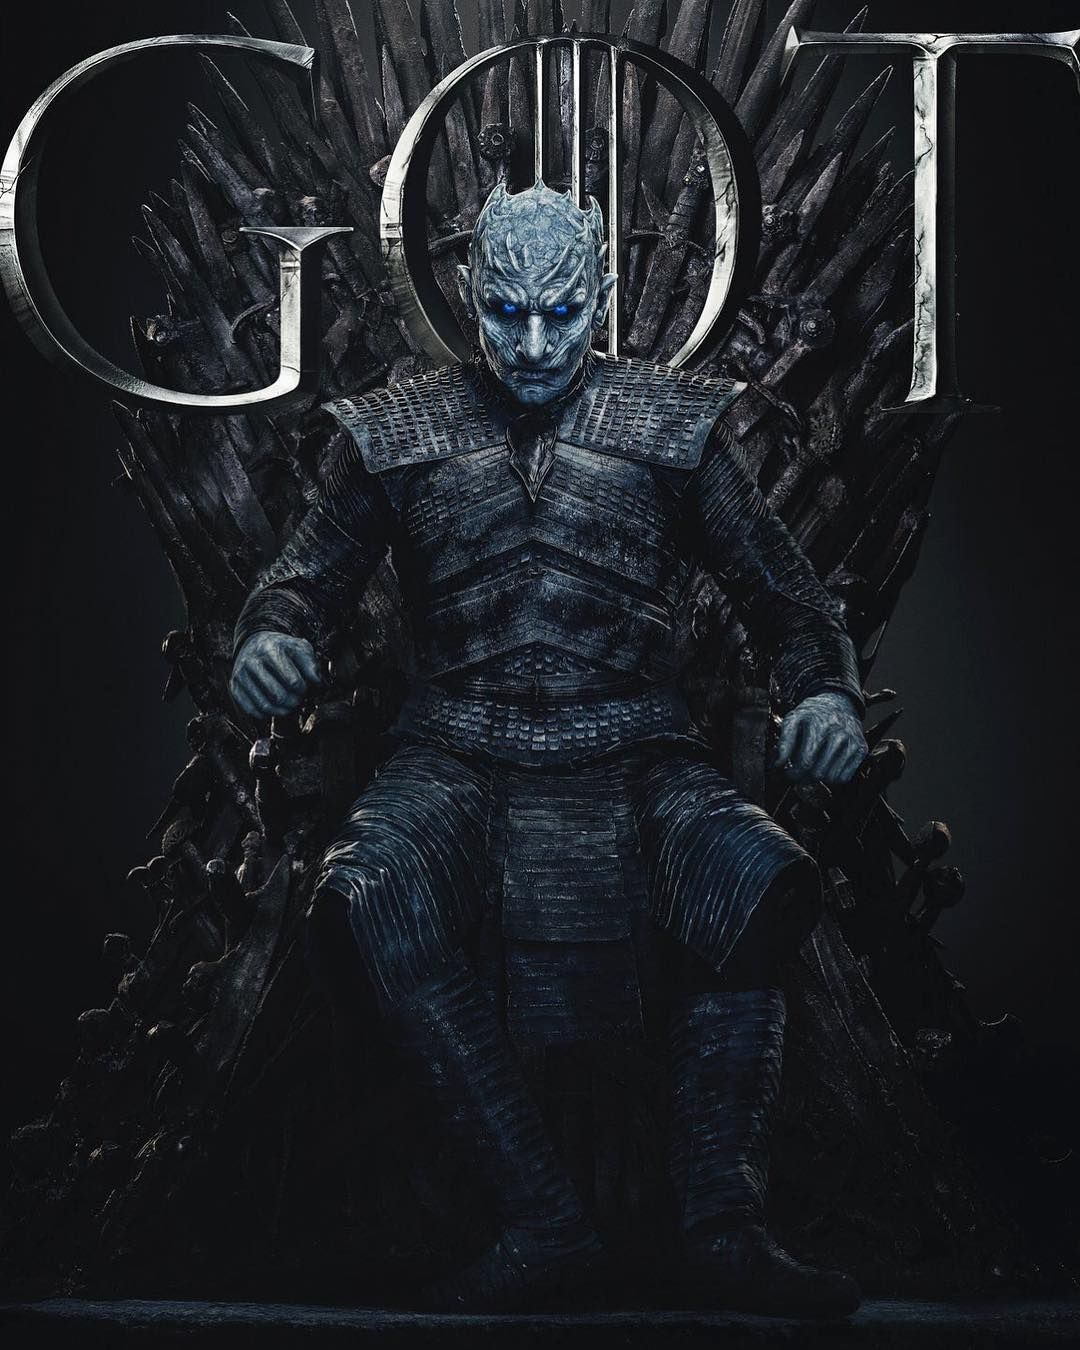 Tag A Friend Hbo Just Released The Official Posters For The Final